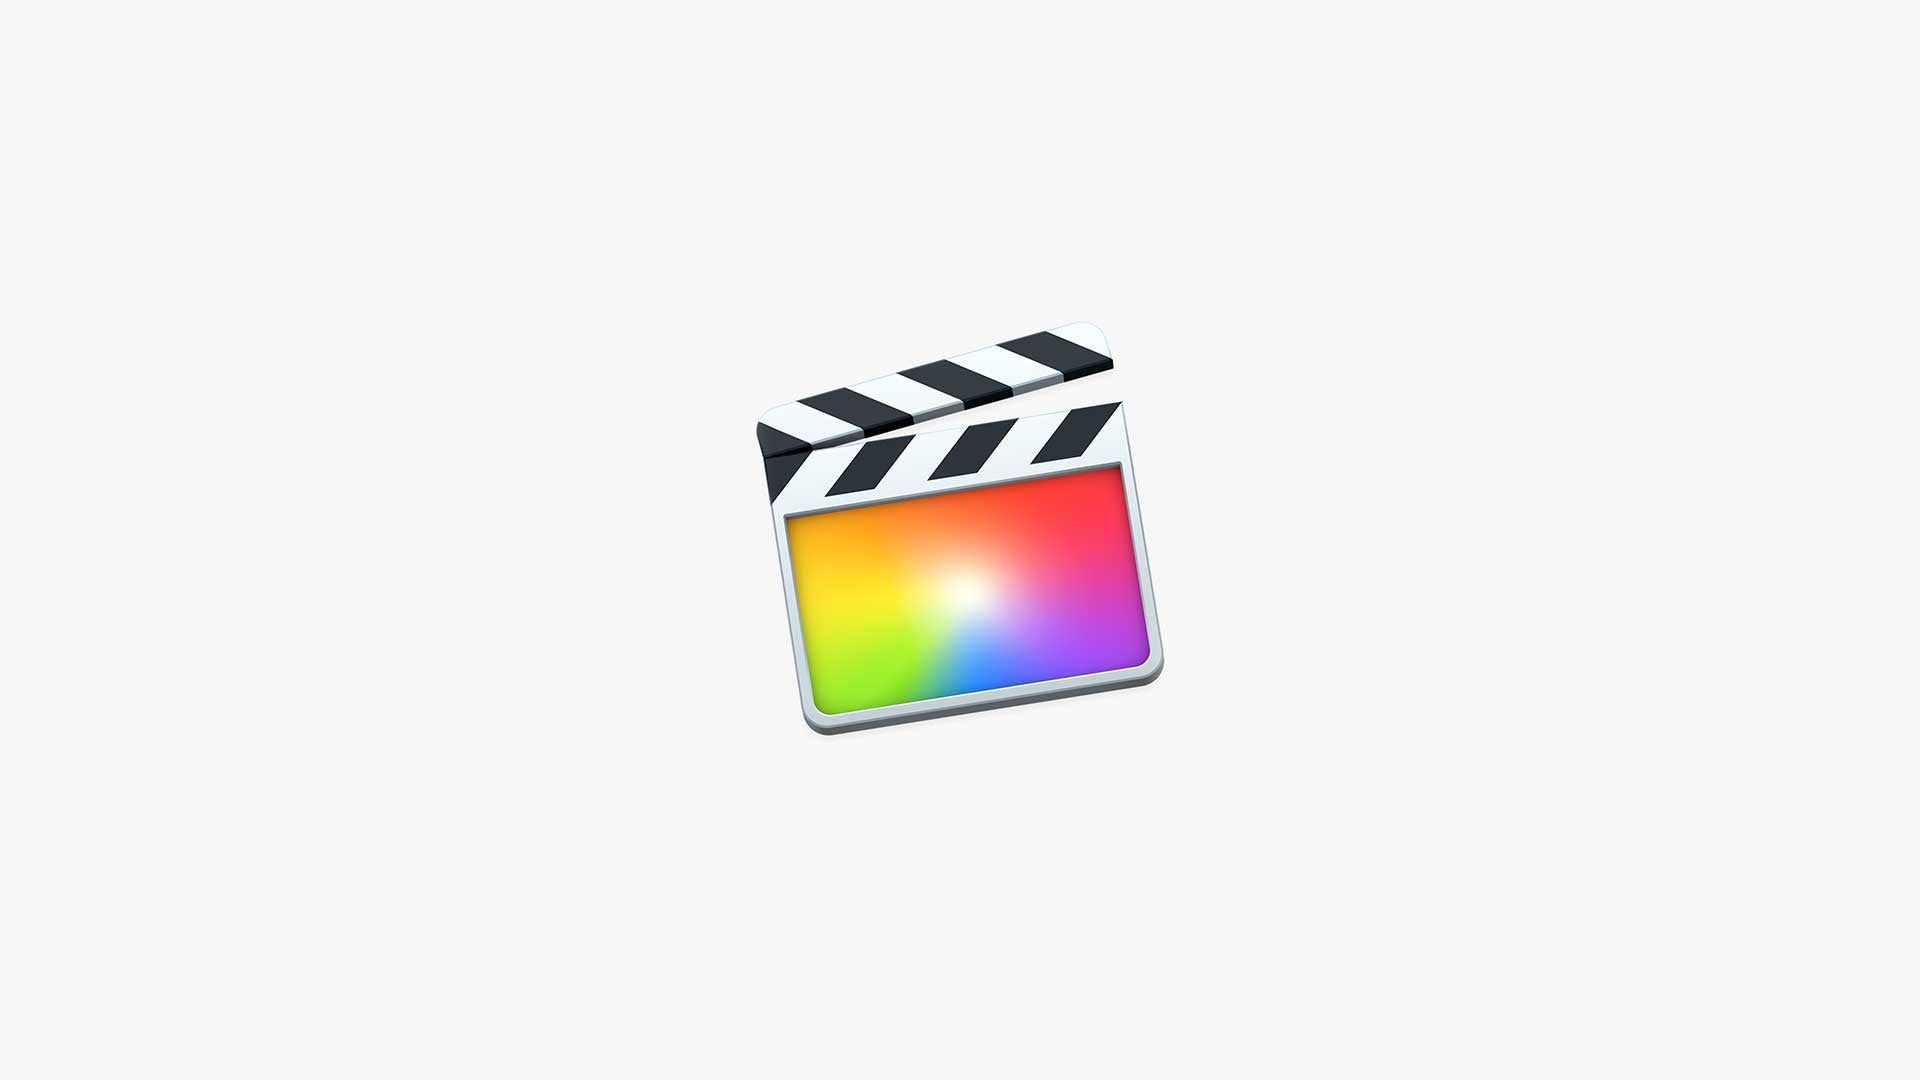 fcpx